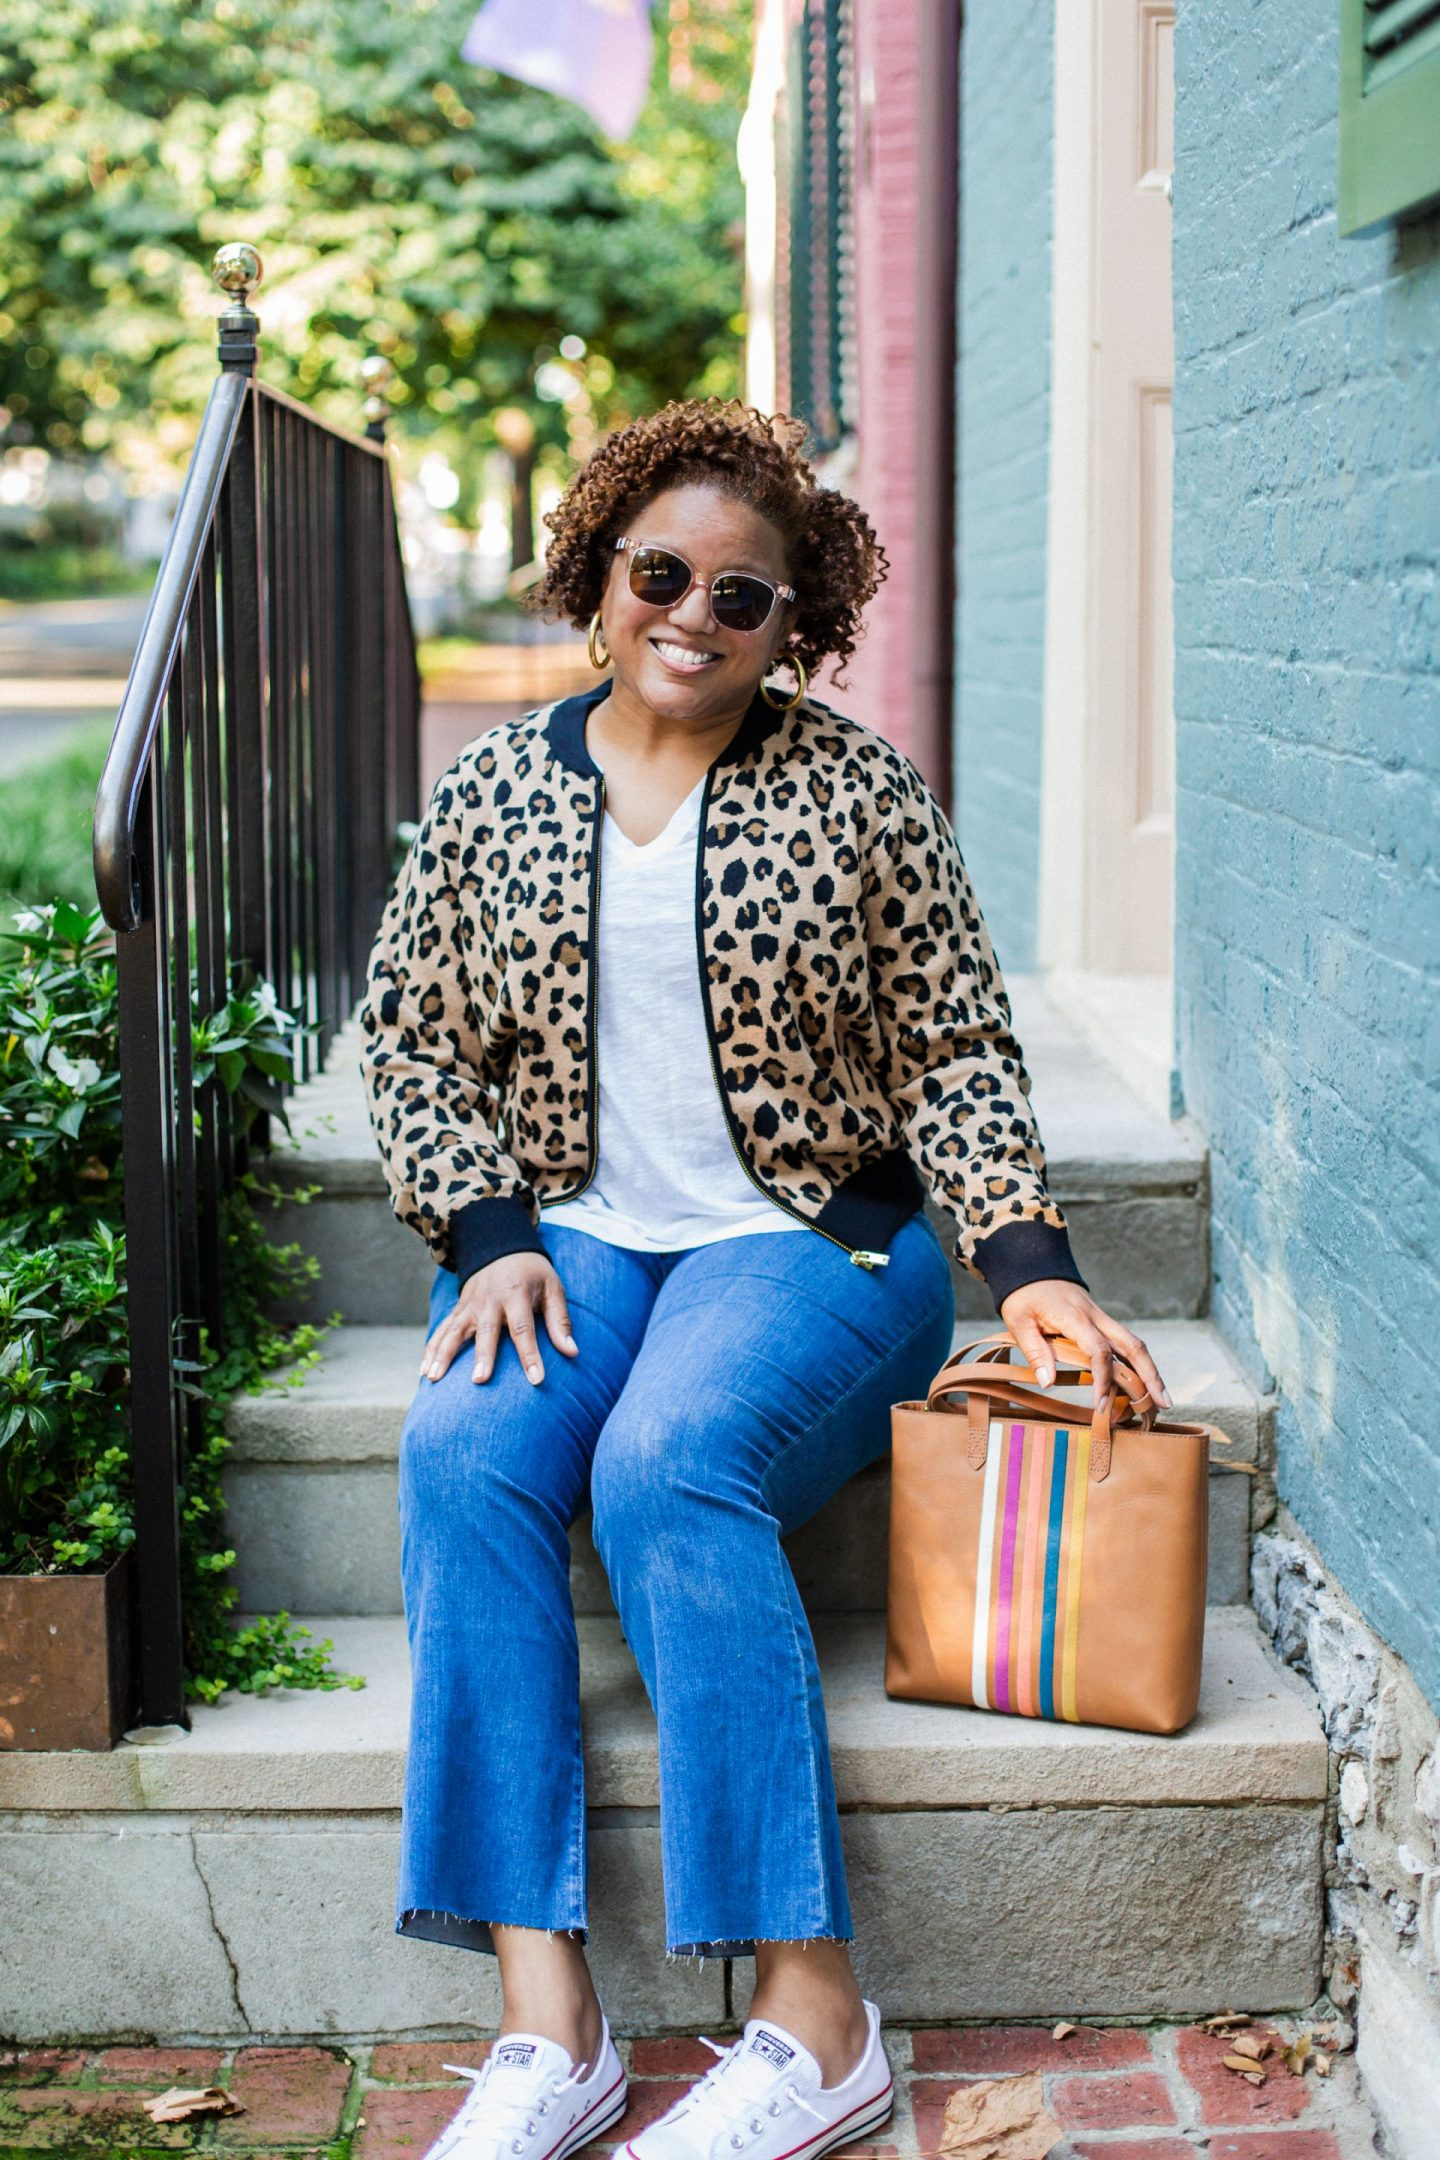 Friday Five by popular Kentucky fashion blog, Really Rynetta: image of a woman wearing a Nordstrom J. Crew Leopard Bomber Sweater Jacket, Nordstrom Madewell Cali High Waist Demi Boot Jeans, white sneakers and Nordstrom Madewell Whisper Cotton V-Neck Pocket Tee